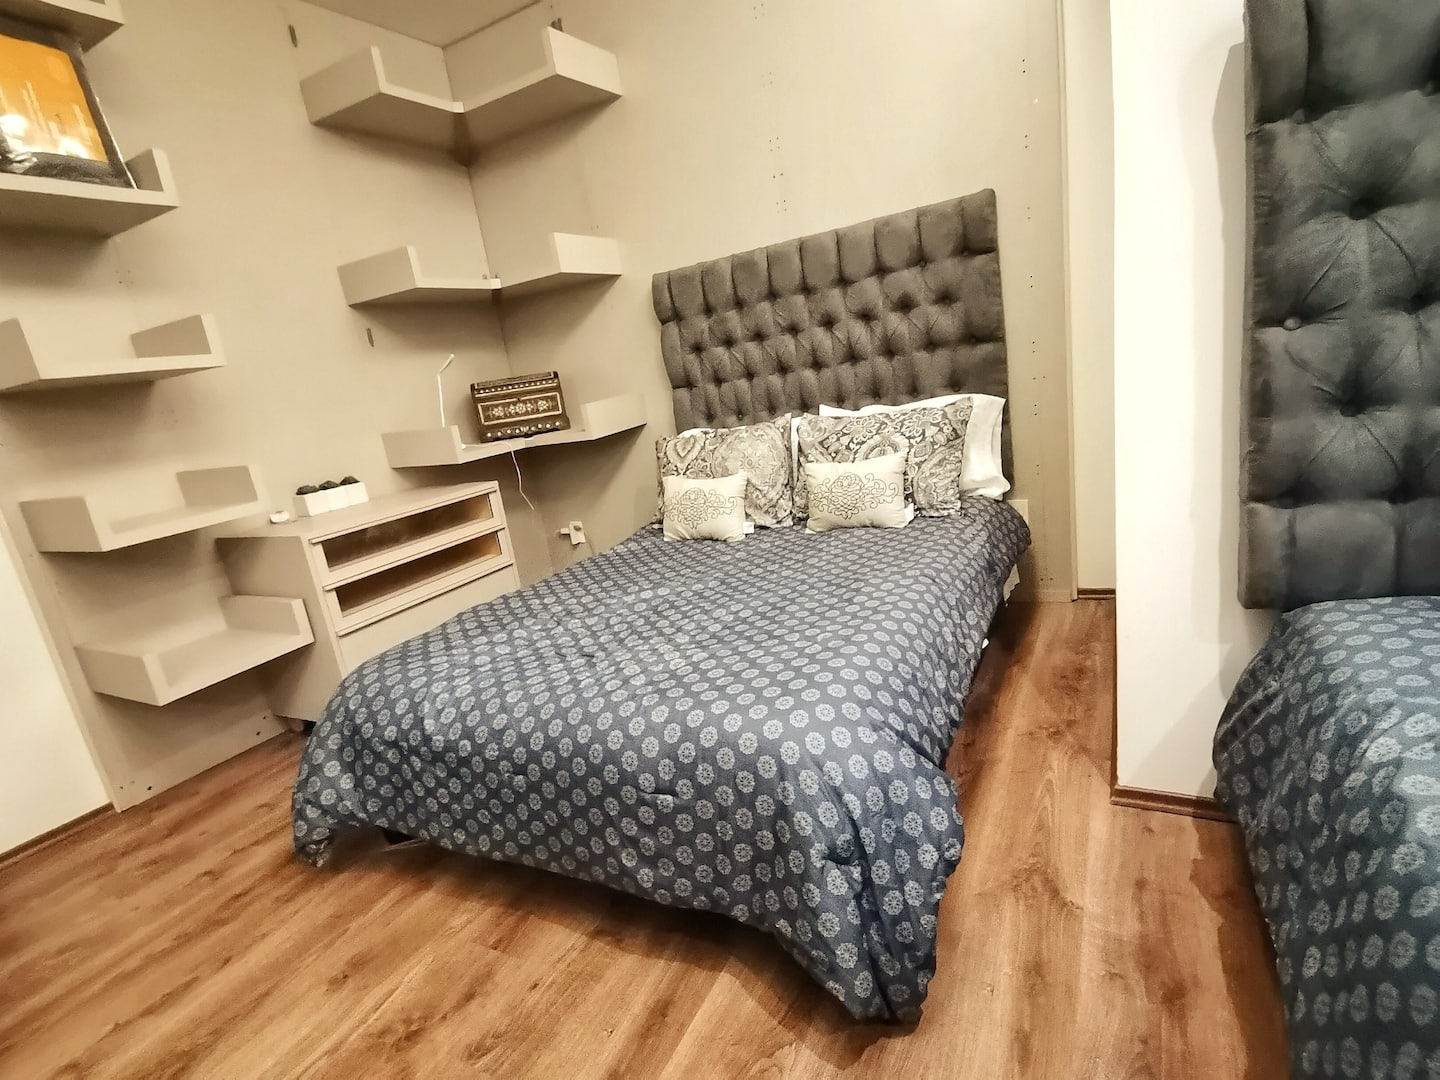 VRBO Mexico City: Two beds inside a bedroom with grey & white comforters